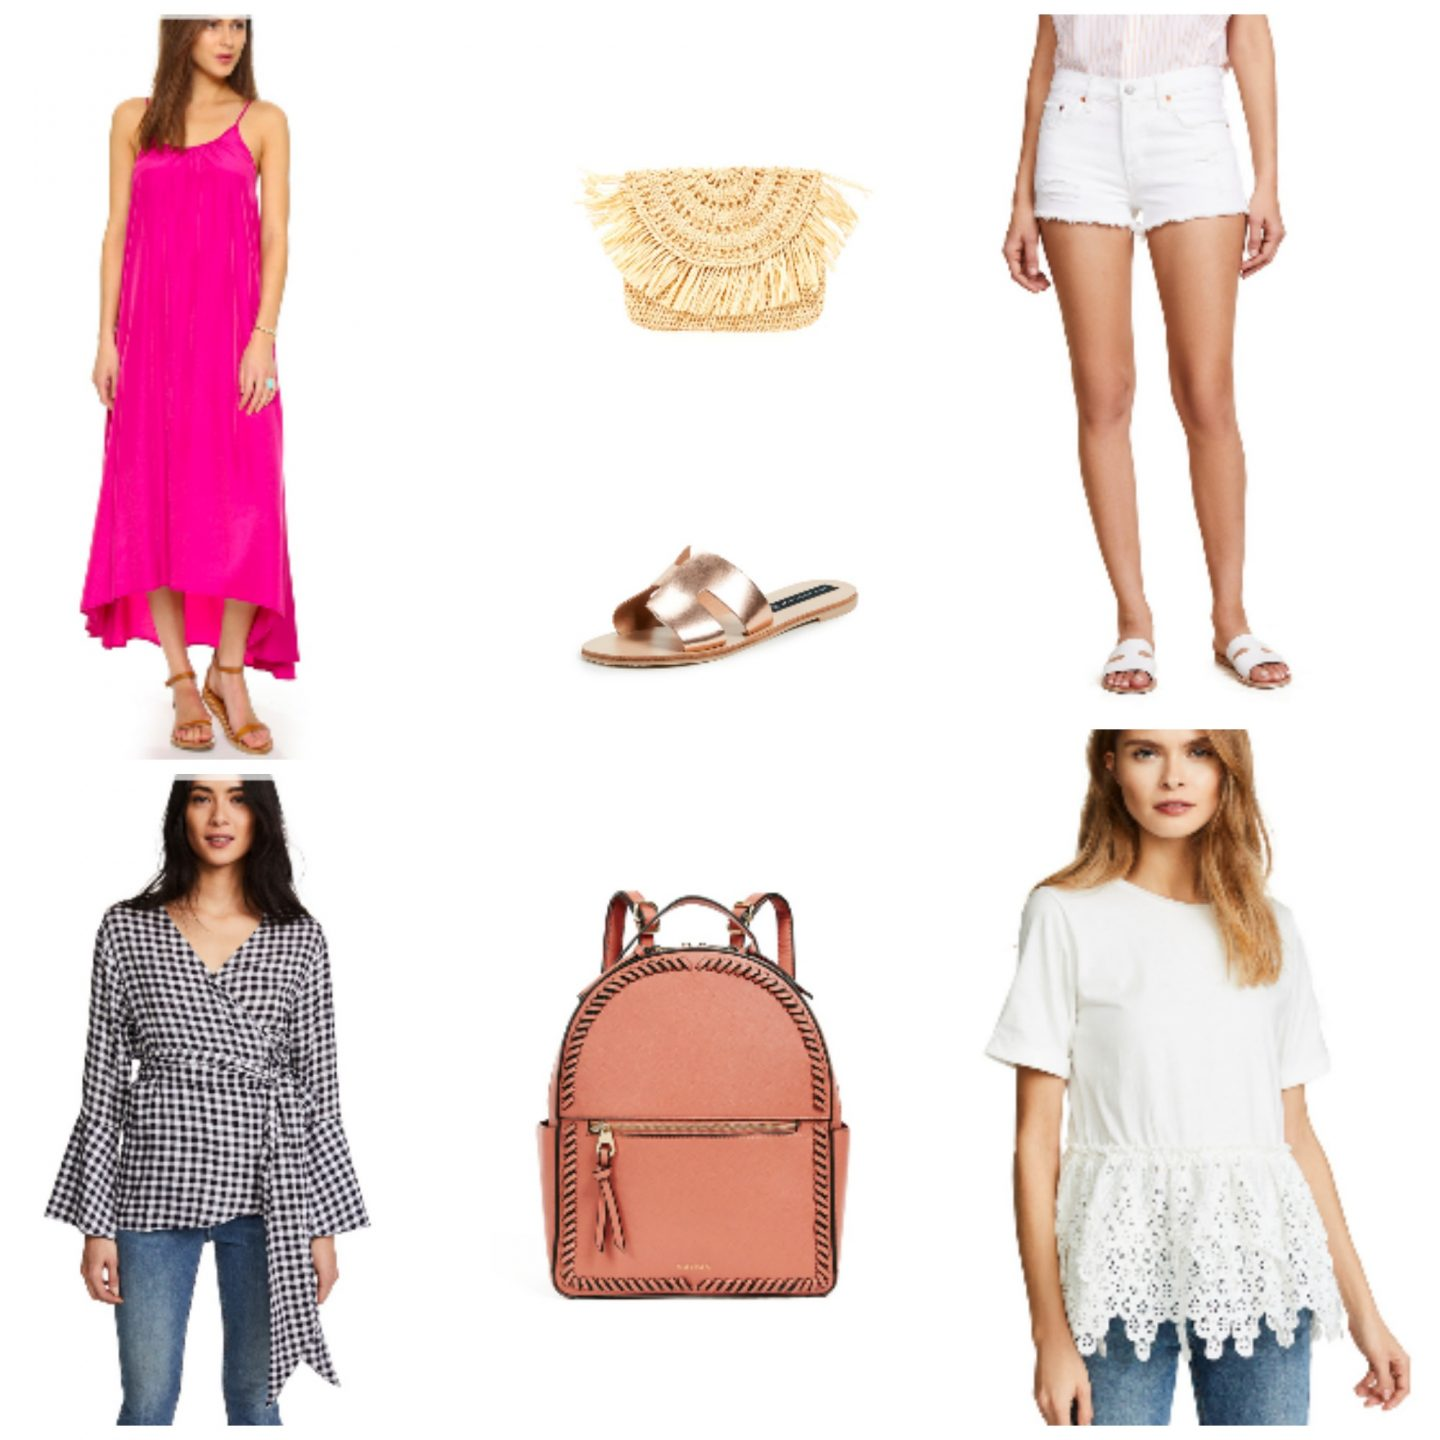 Tuesday's Cravings: Shopbop-@headtotoechic-Head to Toe Chic